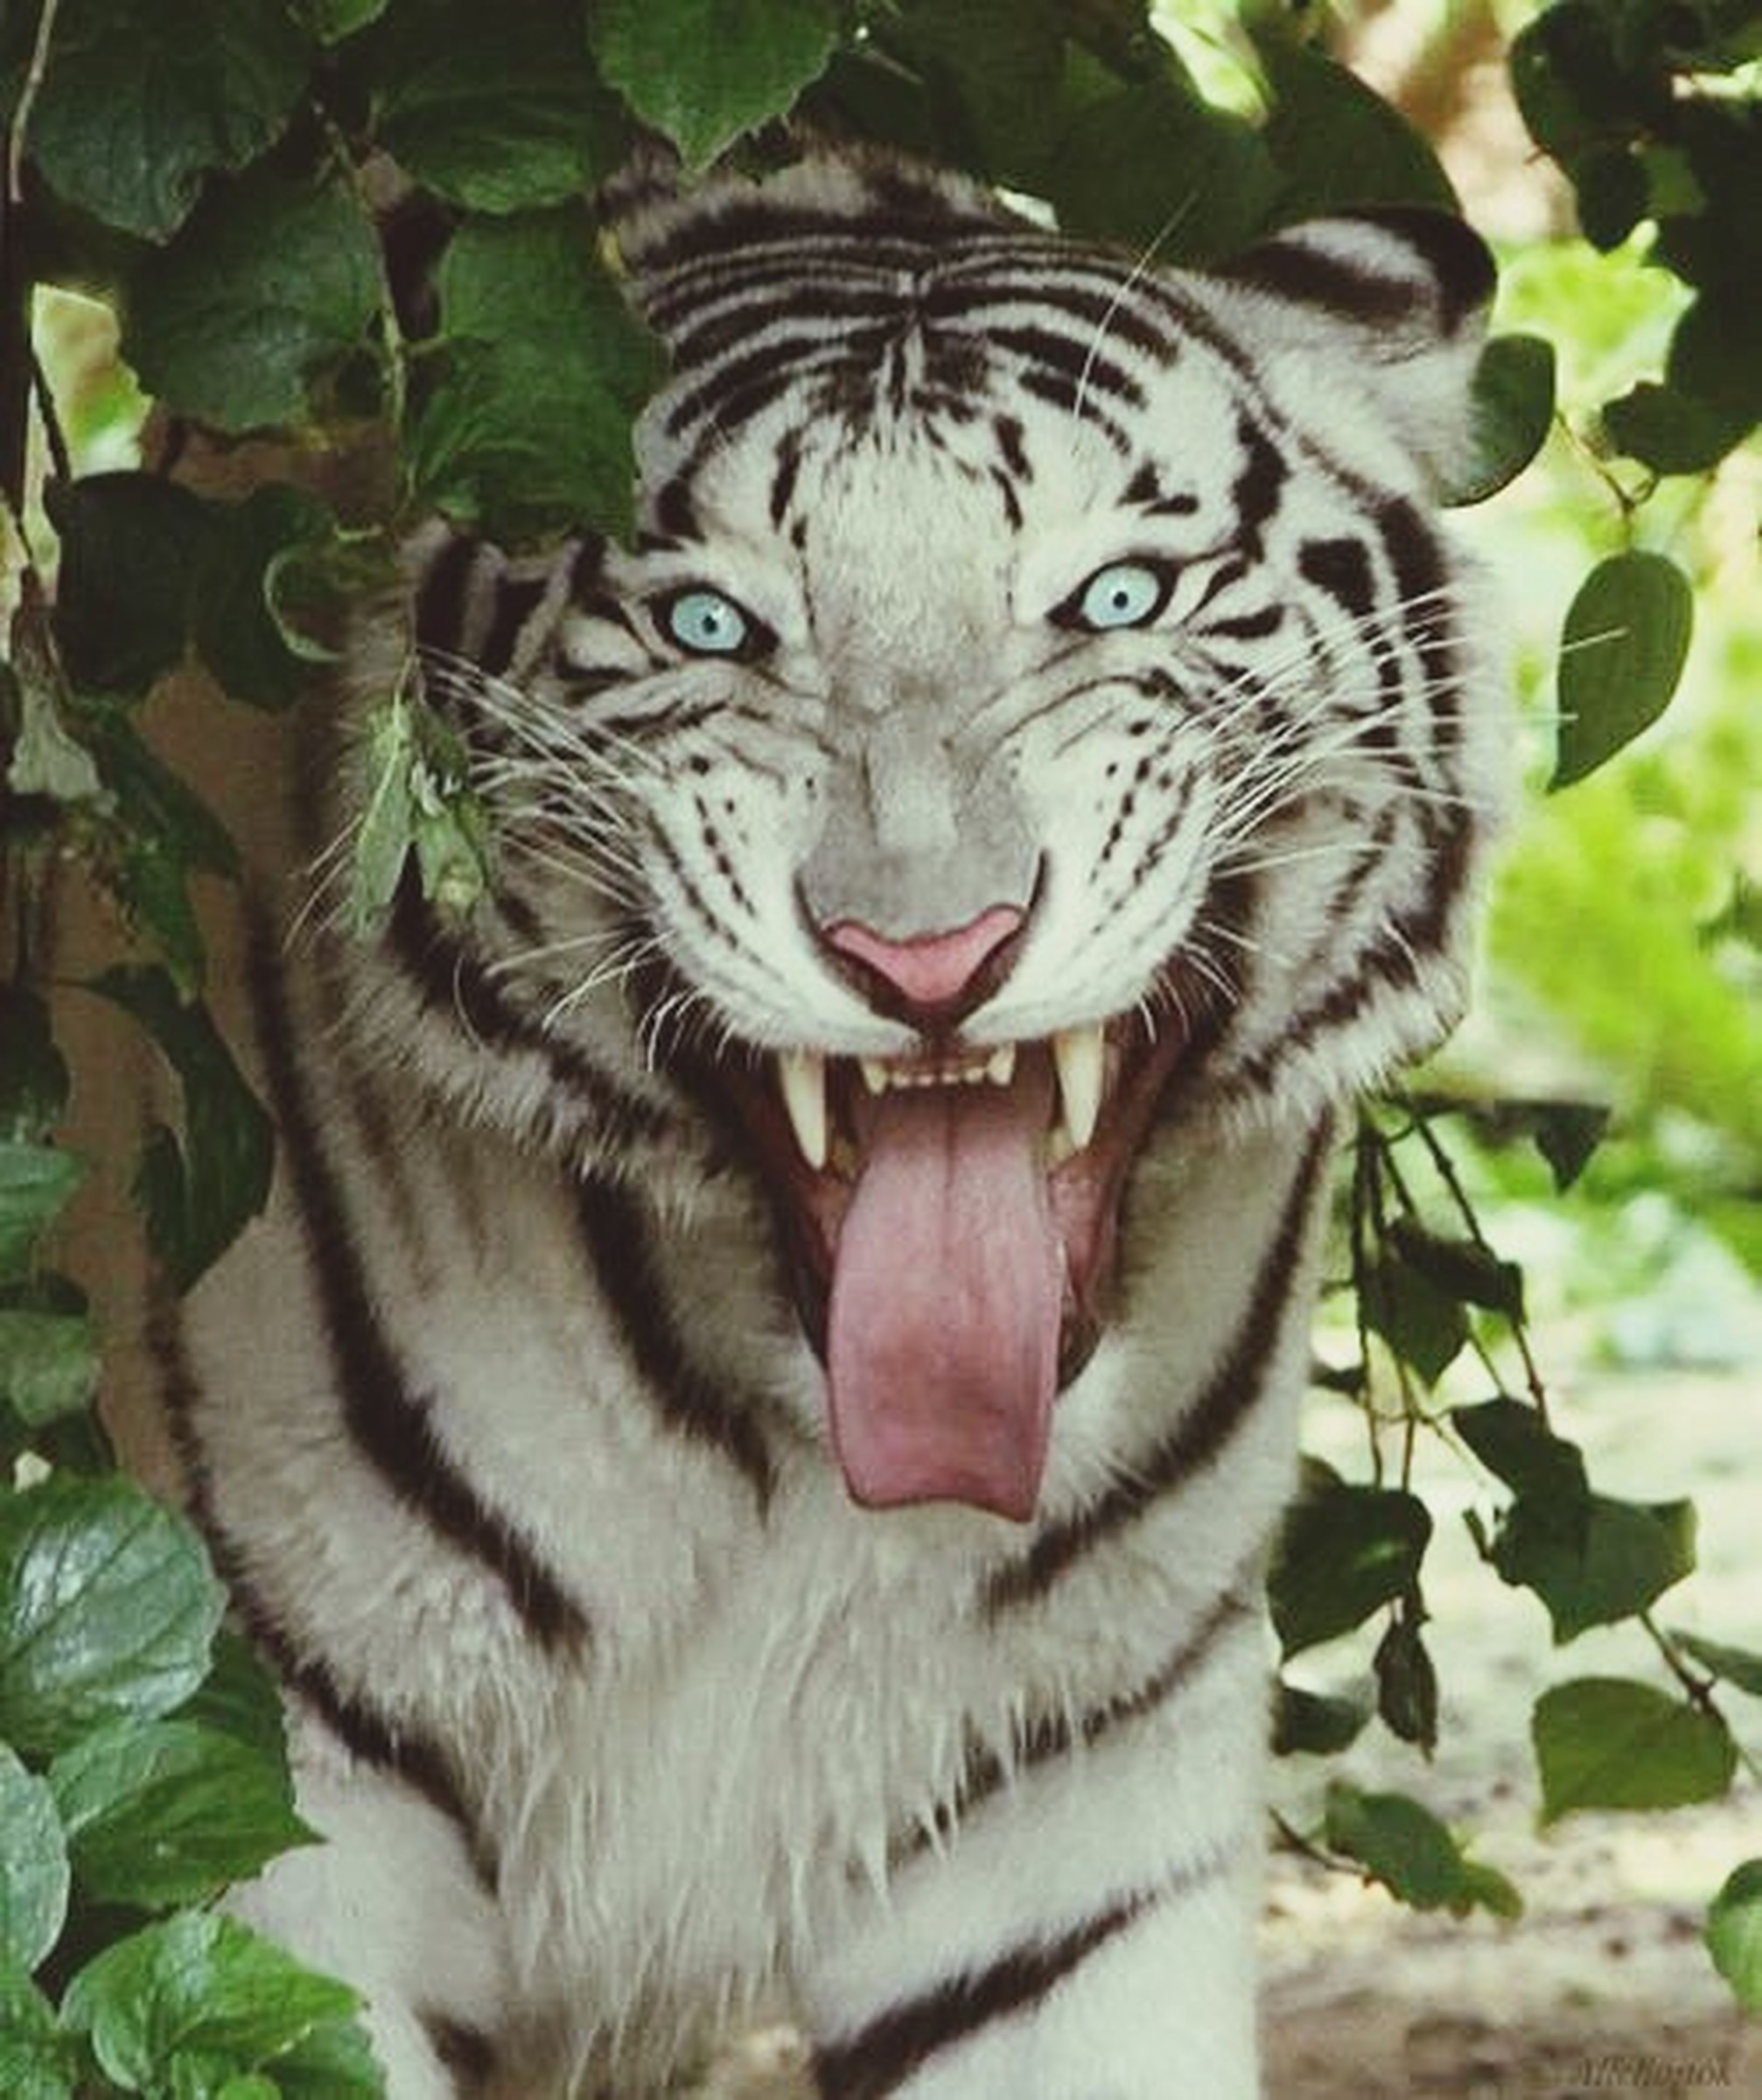 animal themes, one animal, animals in the wild, mammal, wildlife, animal markings, close-up, focus on foreground, tiger, portrait, looking at camera, outdoors, day, nature, no people, whisker, animal head, plant, feline, leaf